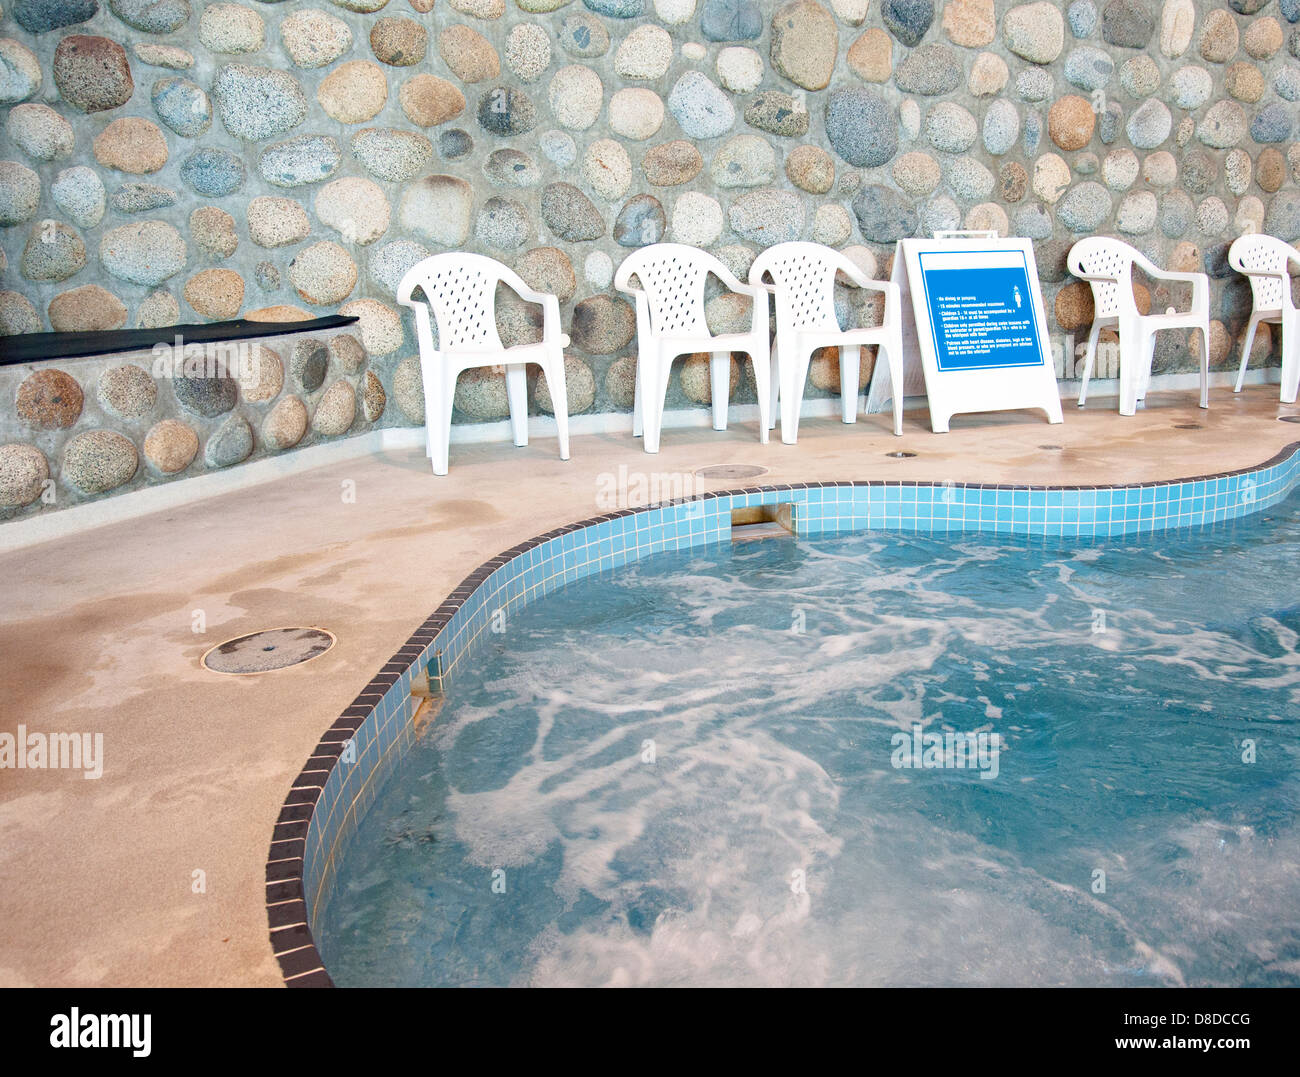 Public indoor hot tub with chairs and rules posted - Stock Image